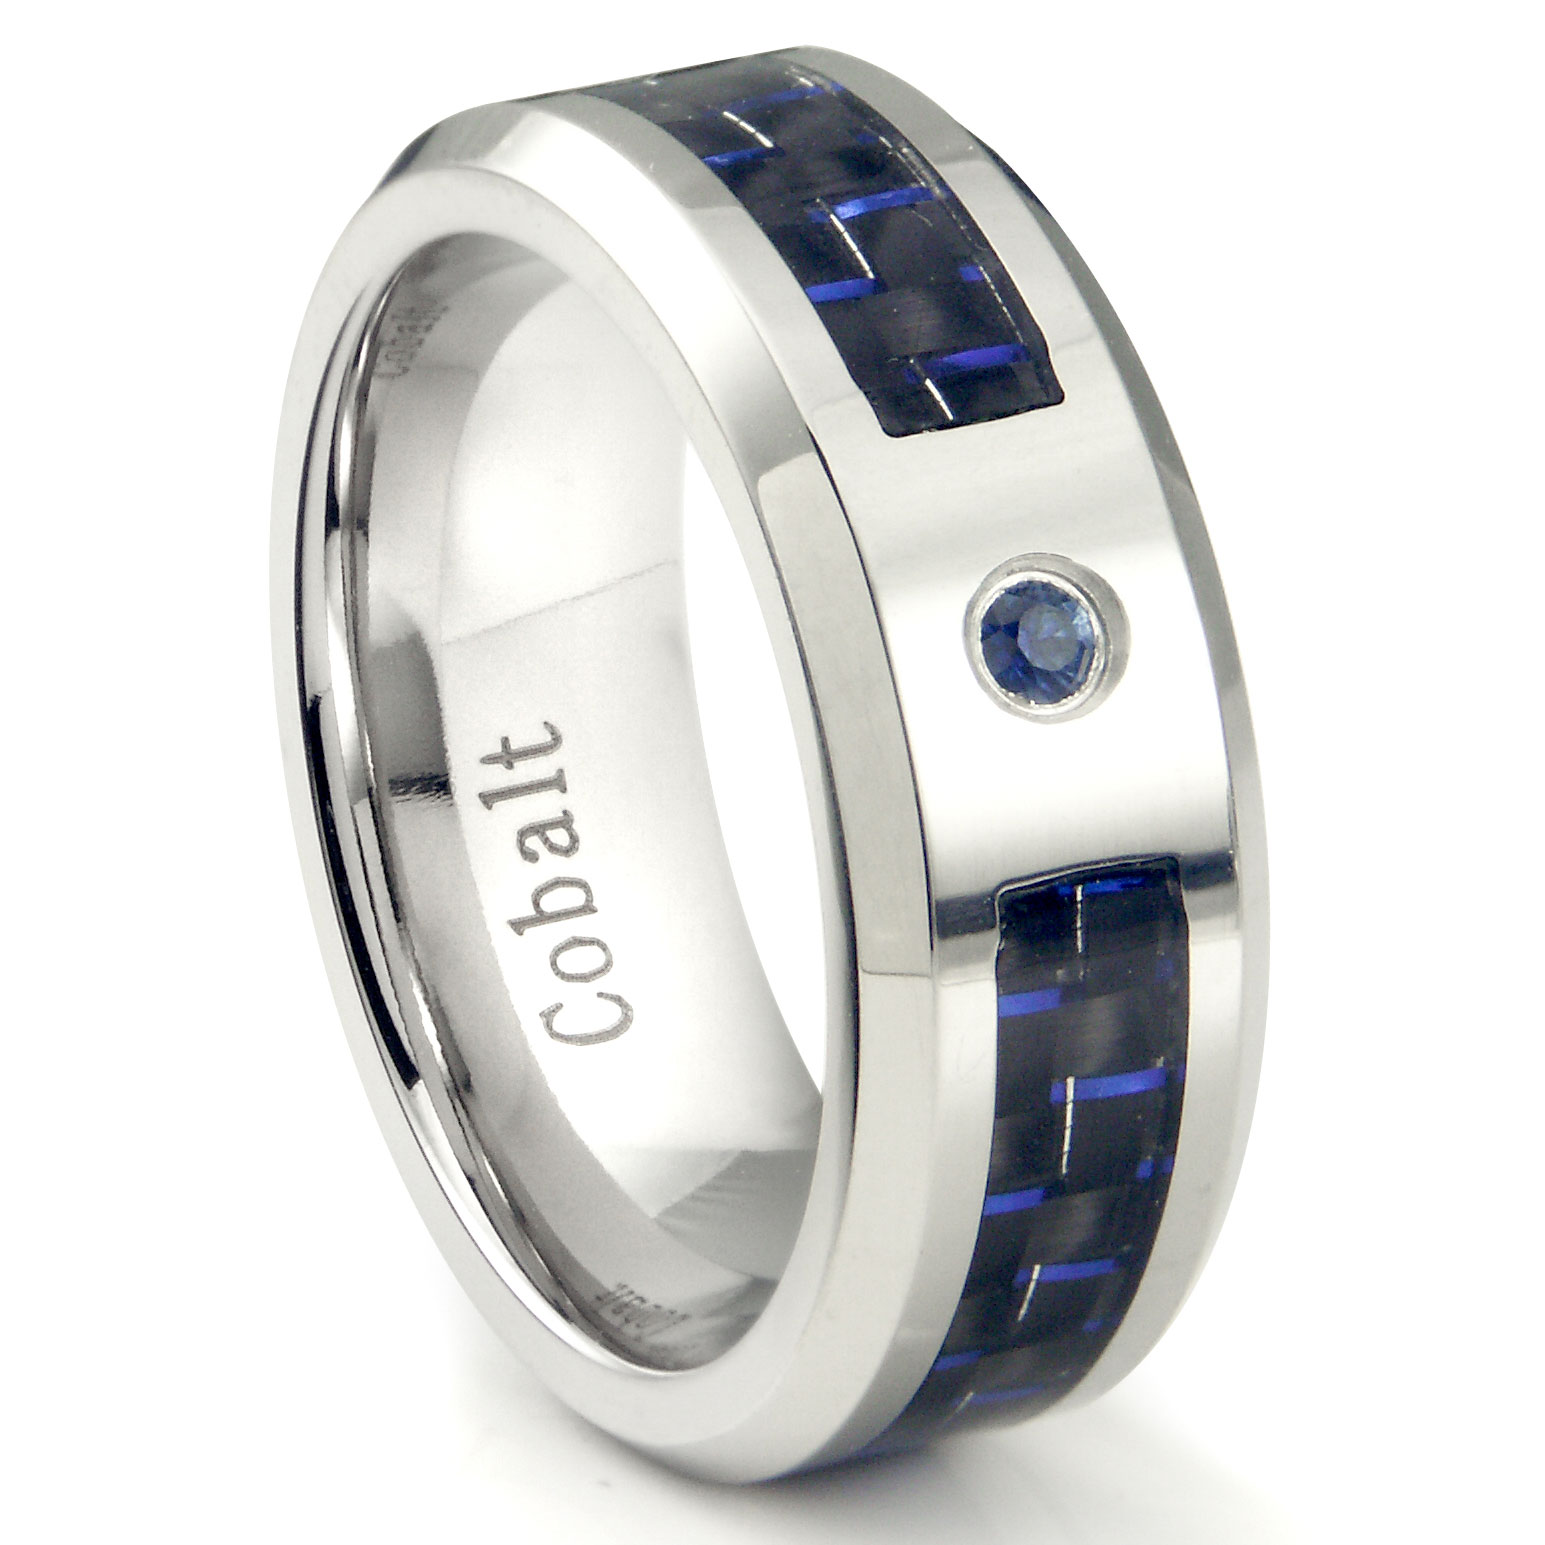 ring wear masculine would men s engagement a male lifestyle you style rings australia